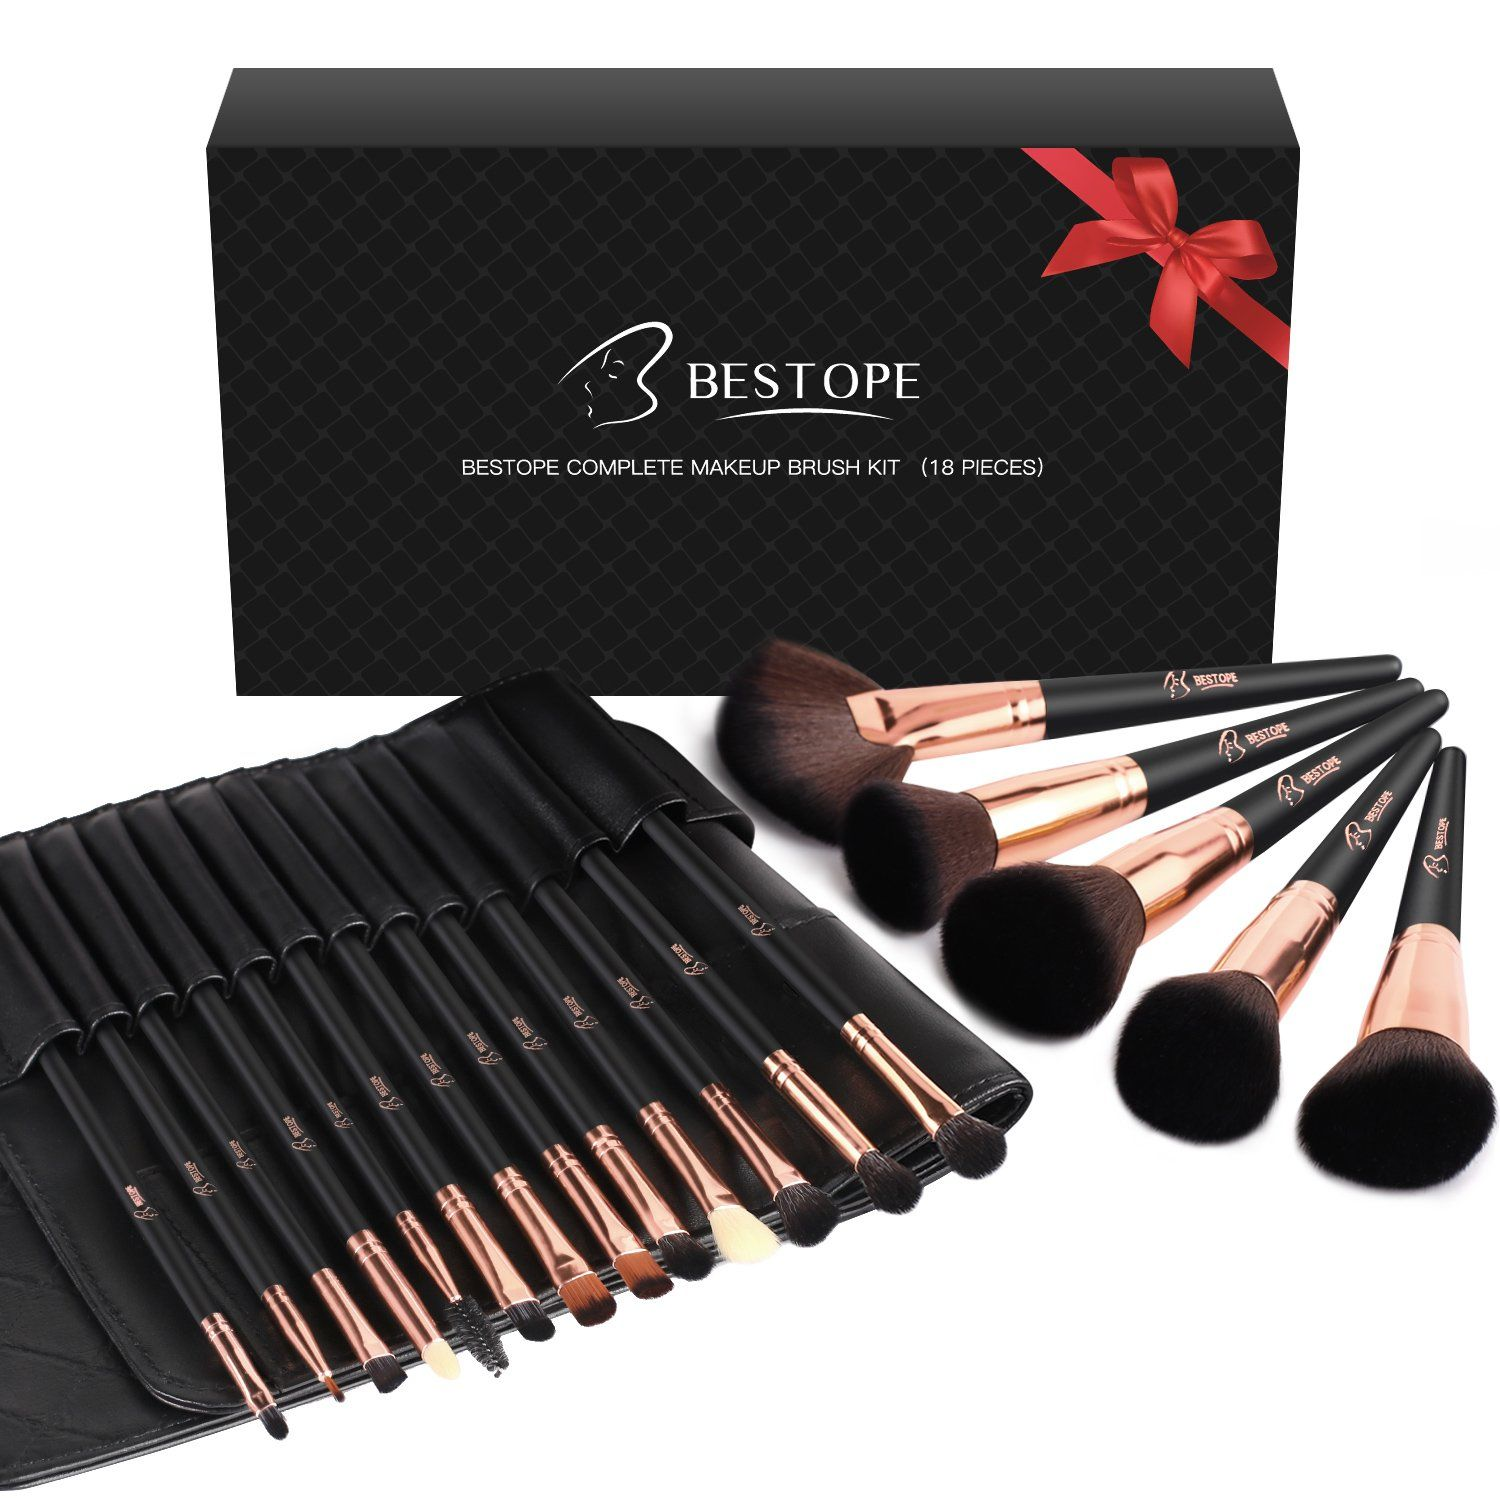 BESTOPE 18pcs Makeup Brush Set Bestope makeup brushes